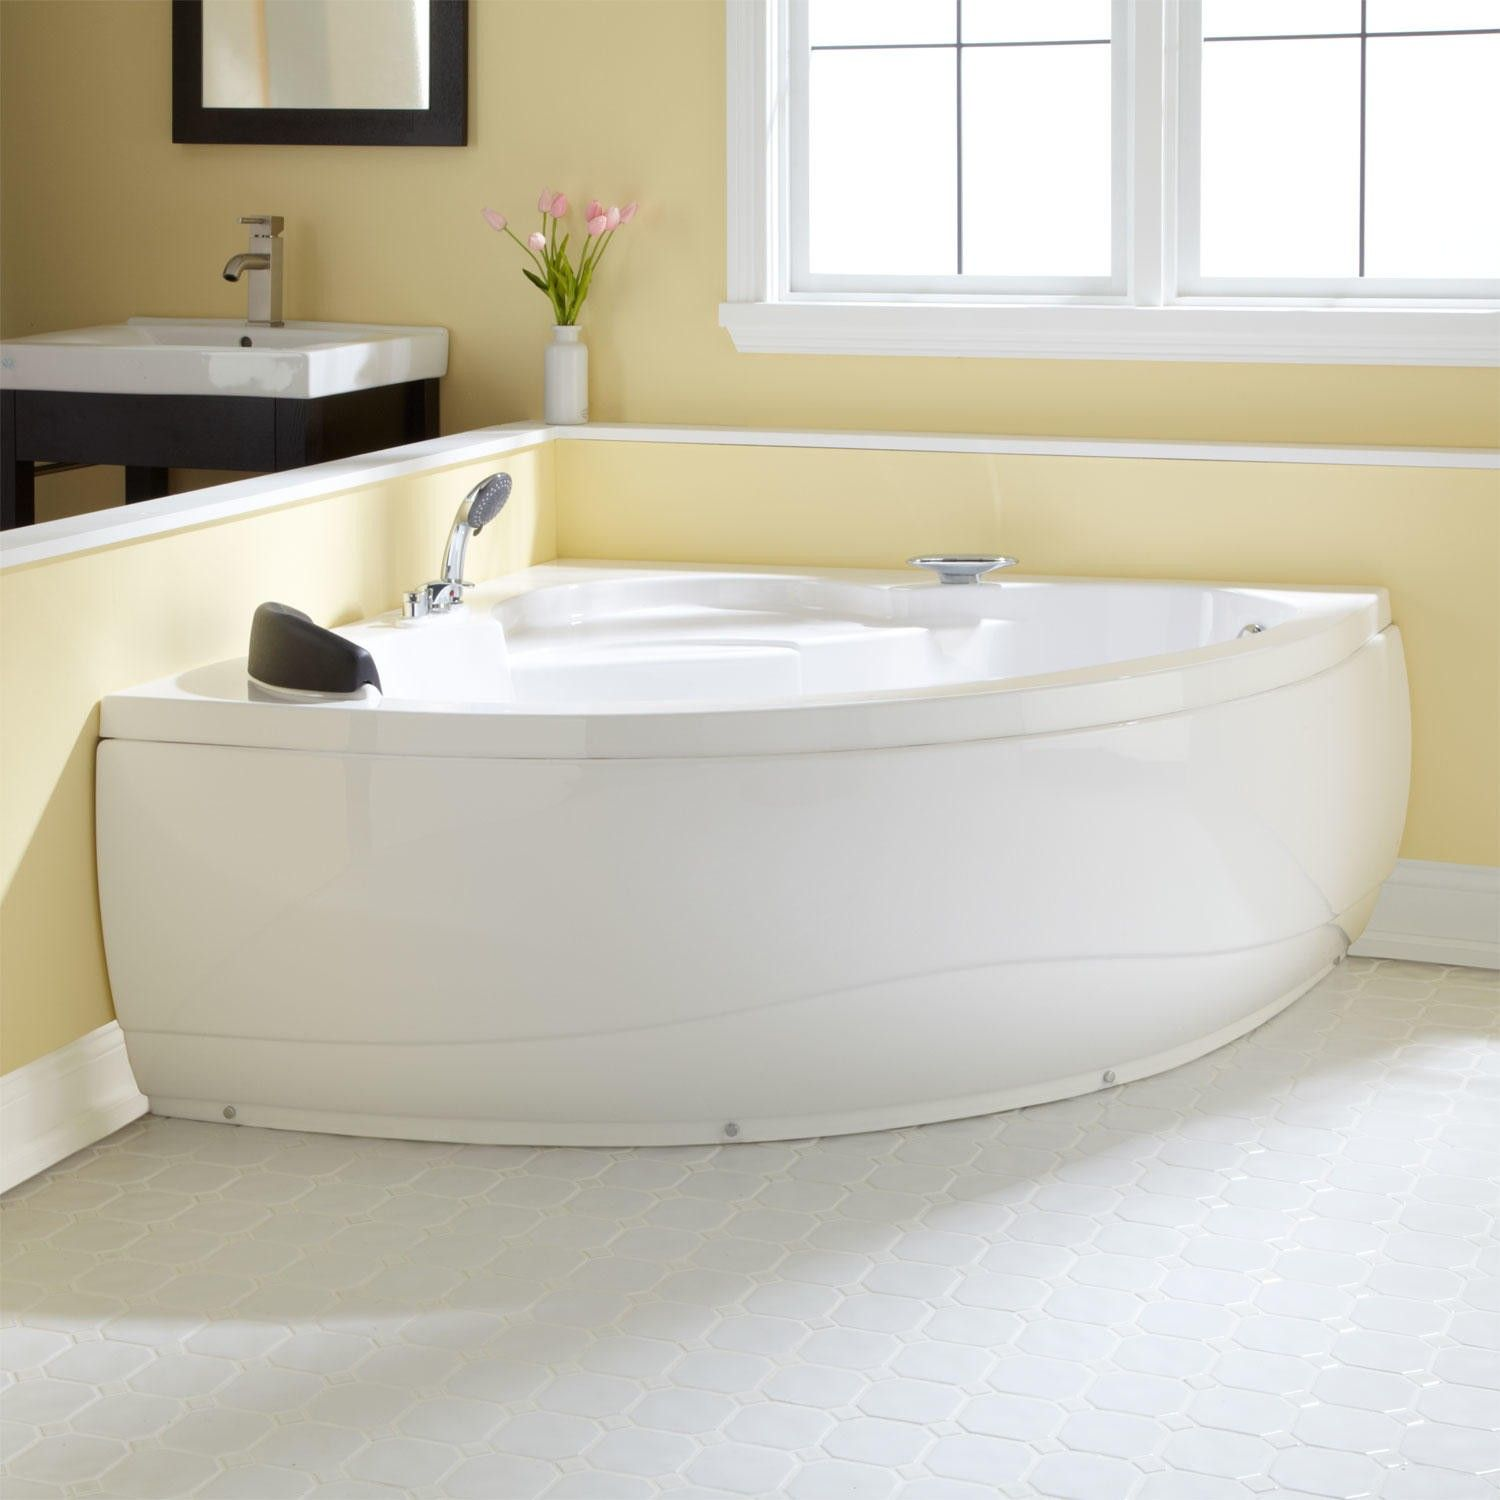 Muhlen Wall-Mount Sink | Freestanding tub and Tubs